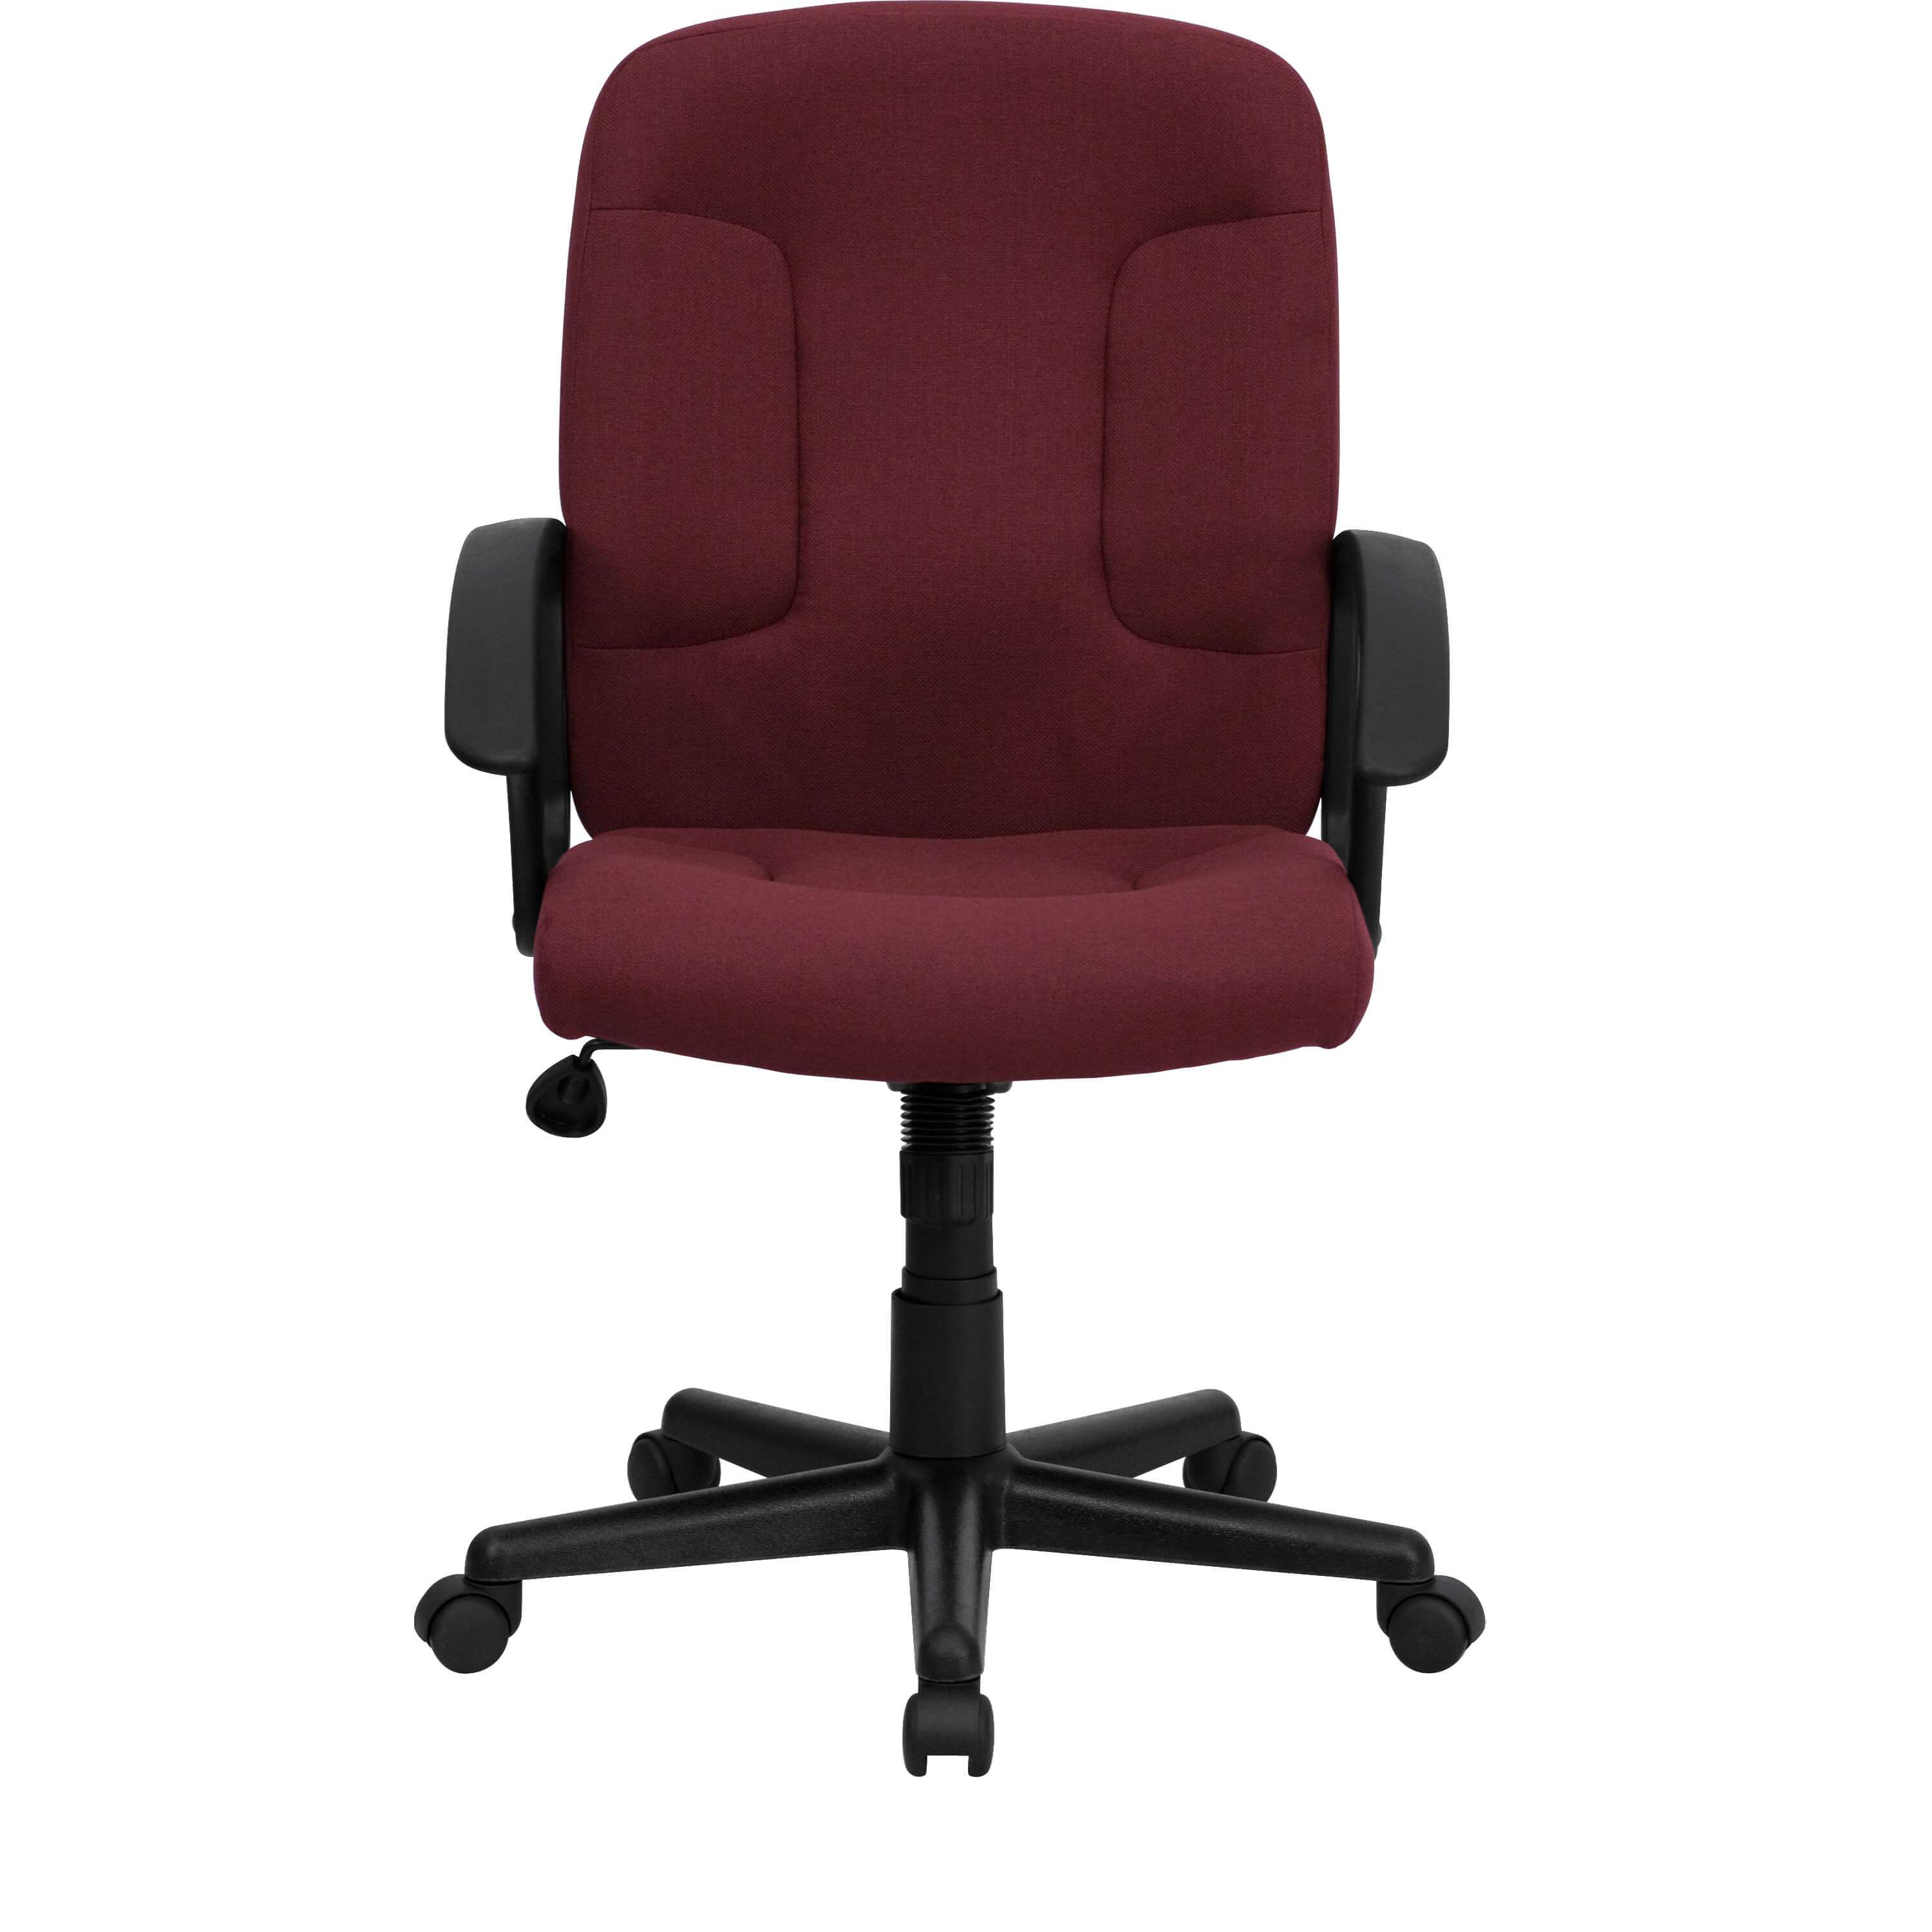 Cool desk chairs CUB GO ST 6 BY GG FLA